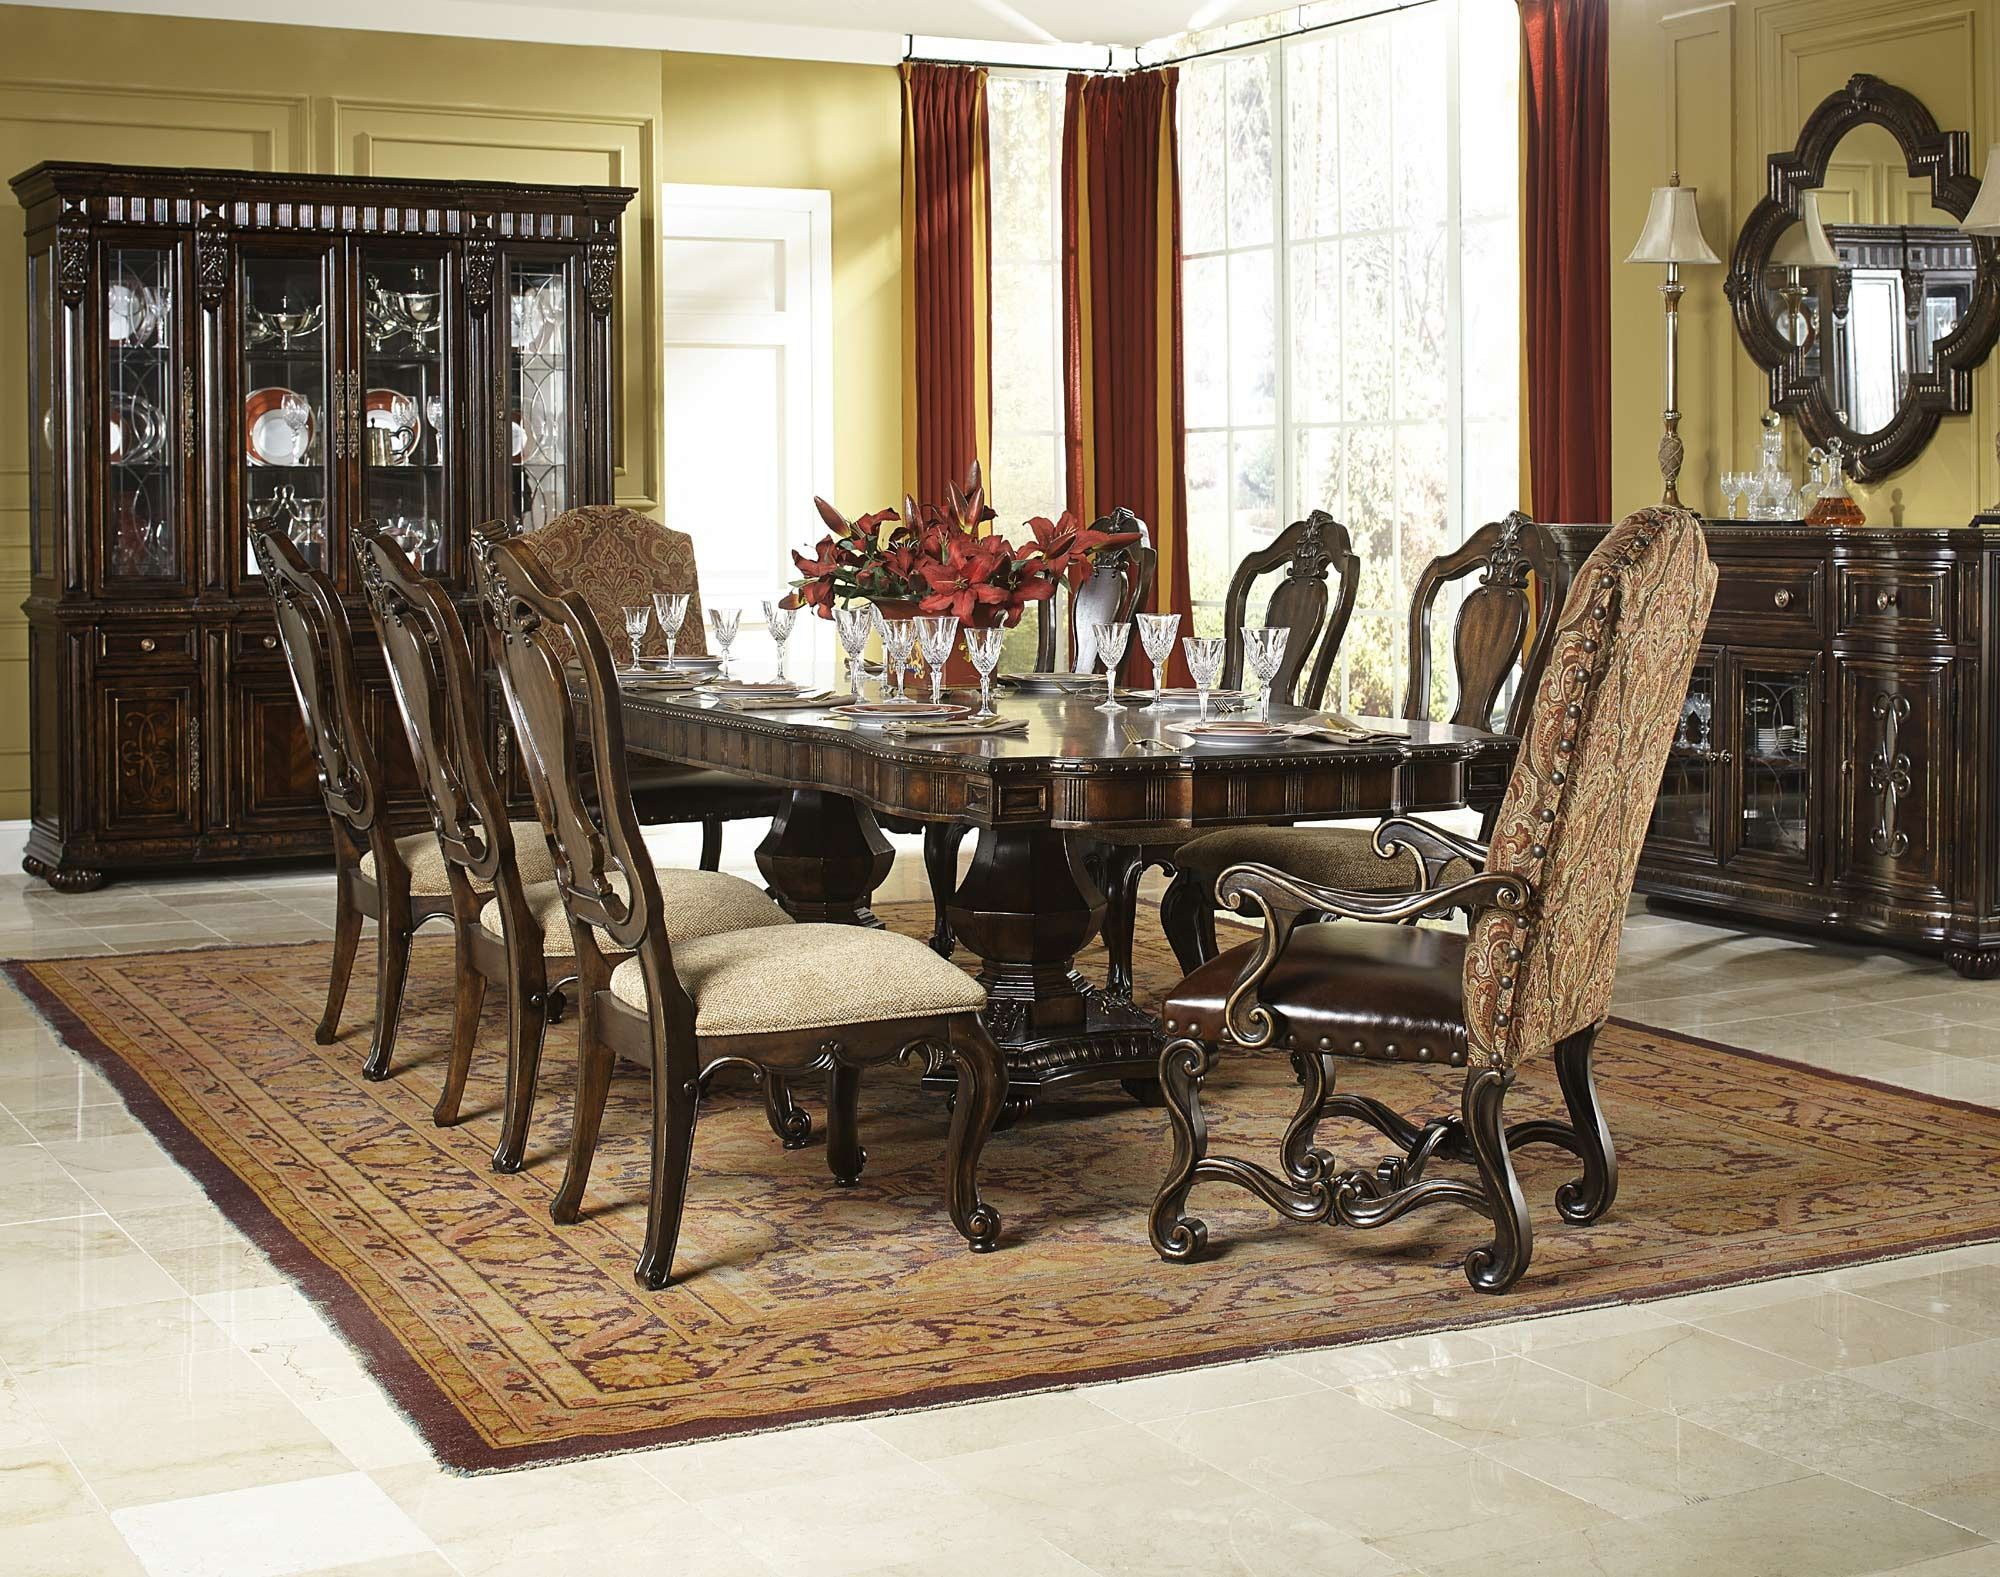 La Bella Vita Double Pedestal Table Dining Room Set Legacy Classic Furniture Home Gal Charming Dining Room Dining Room Design Traditional Dining Room Table